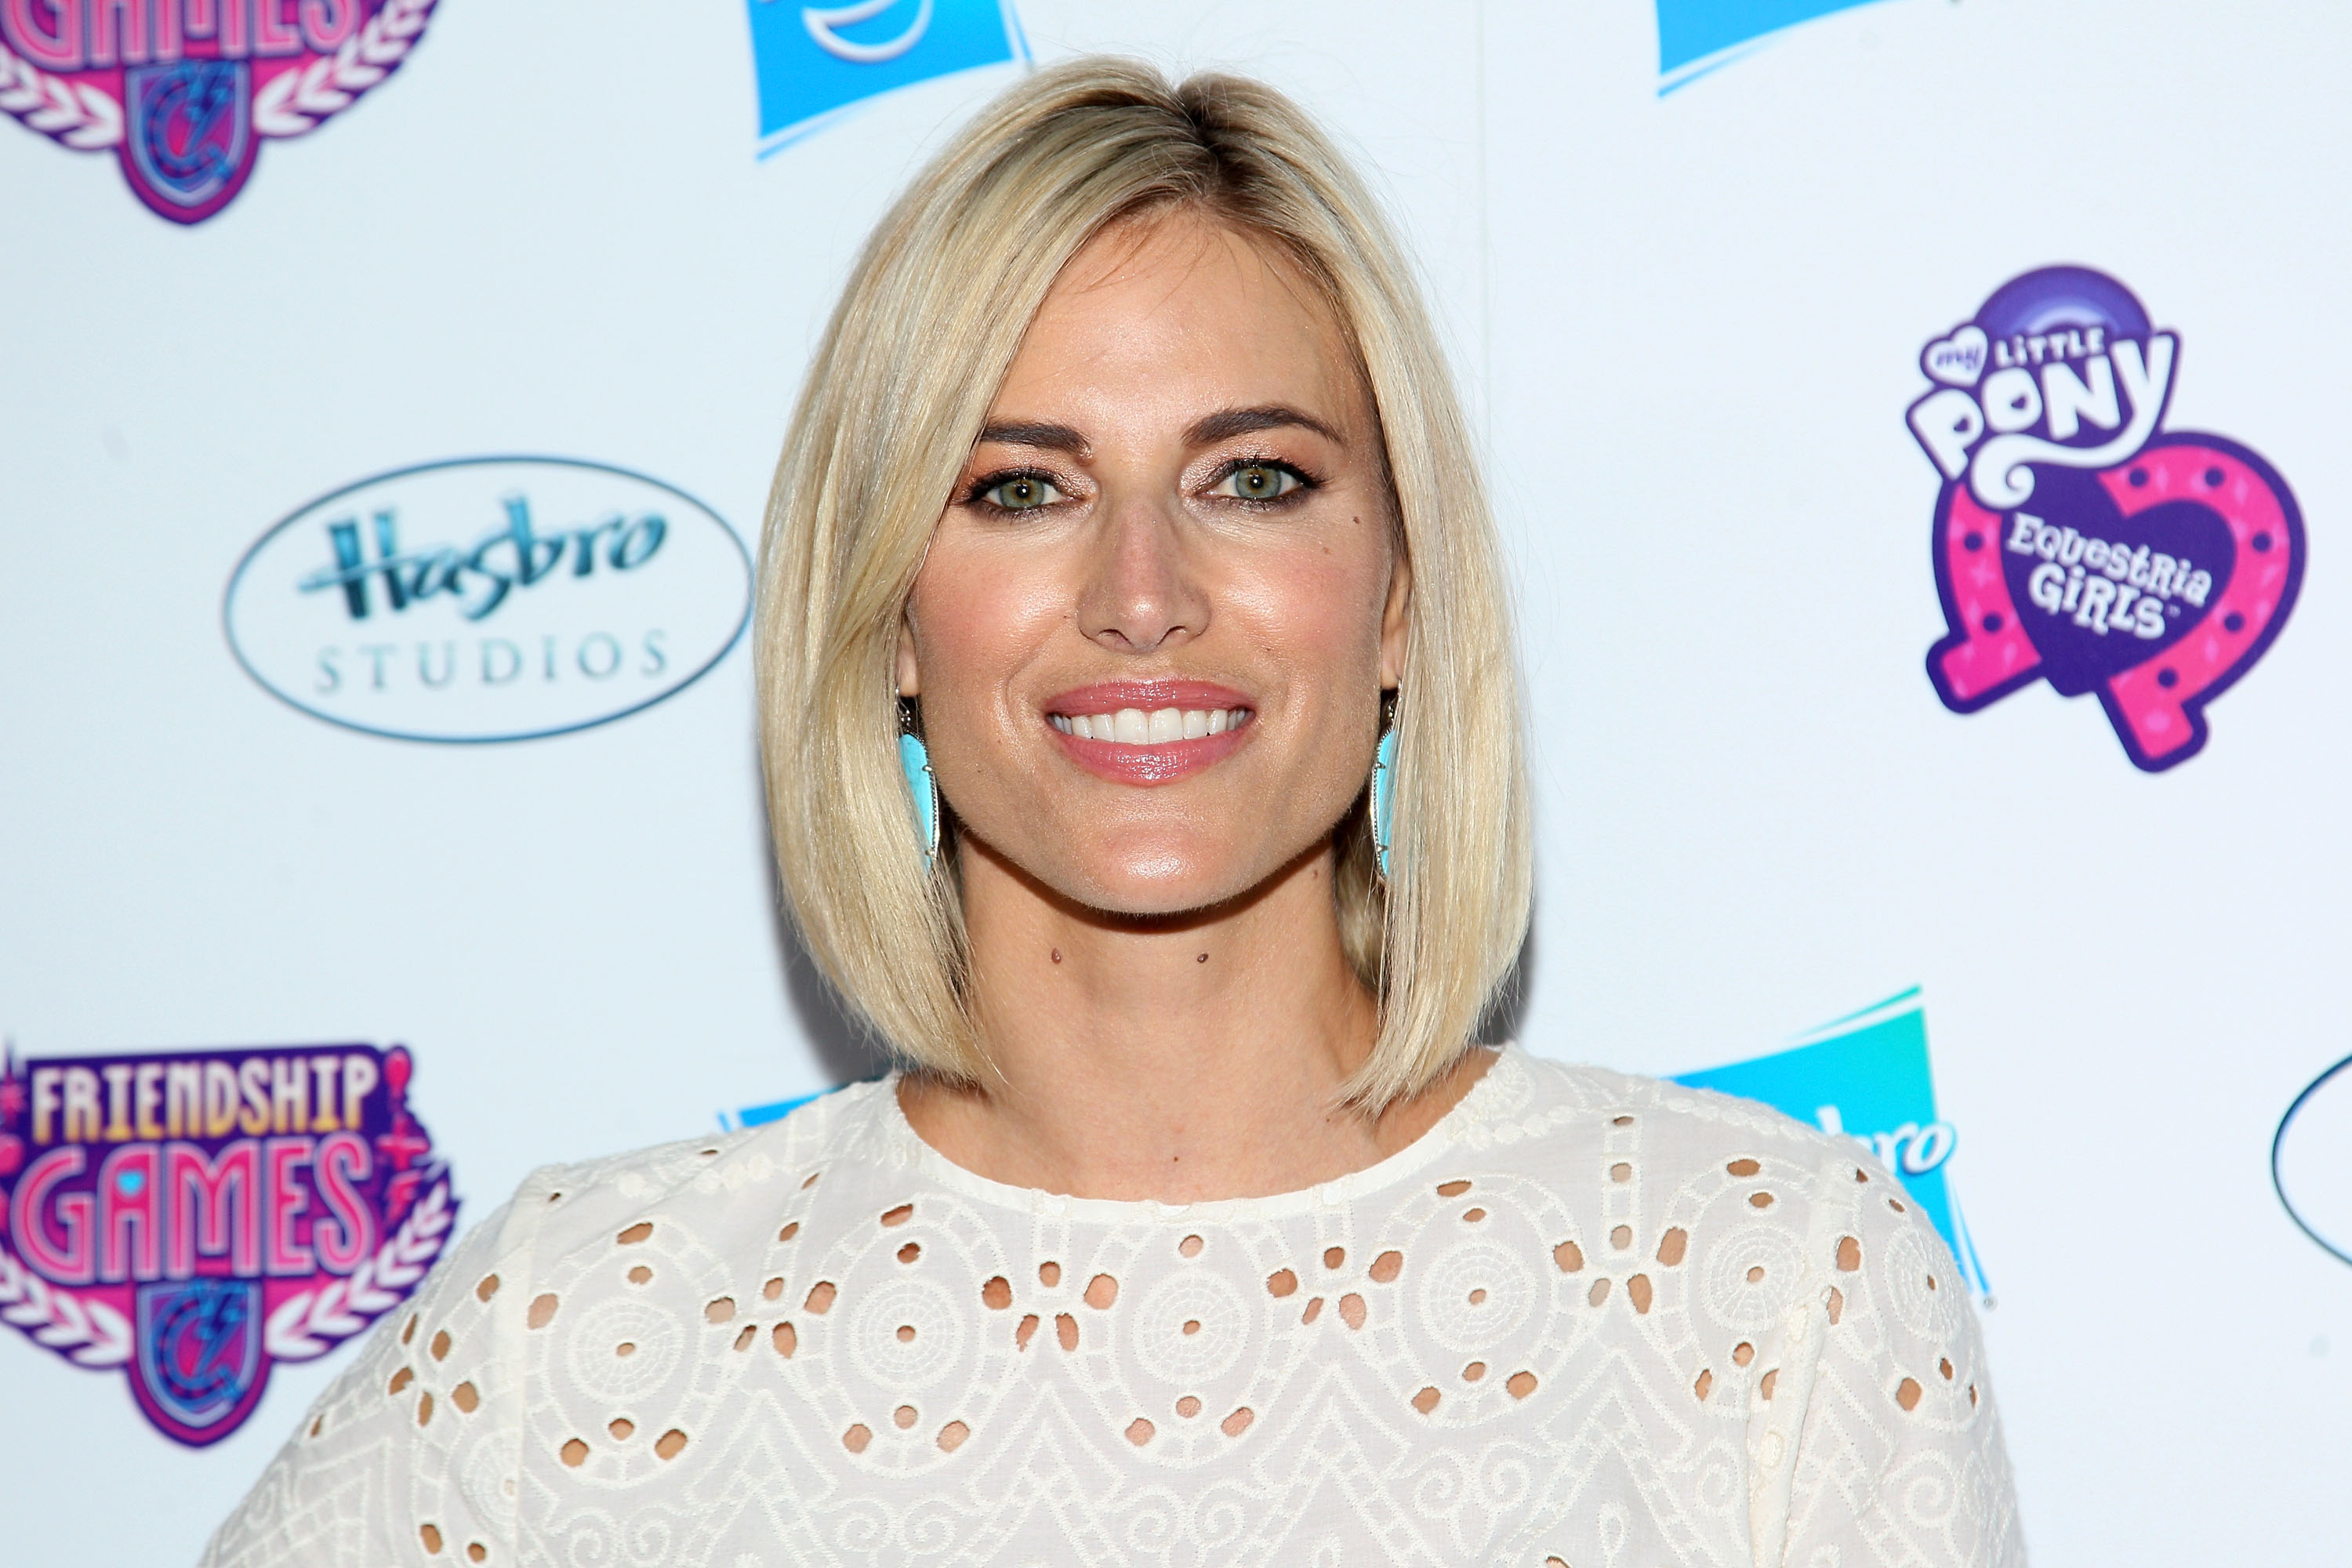 Kristen Taekman's philosophy on being healthy during the holidays